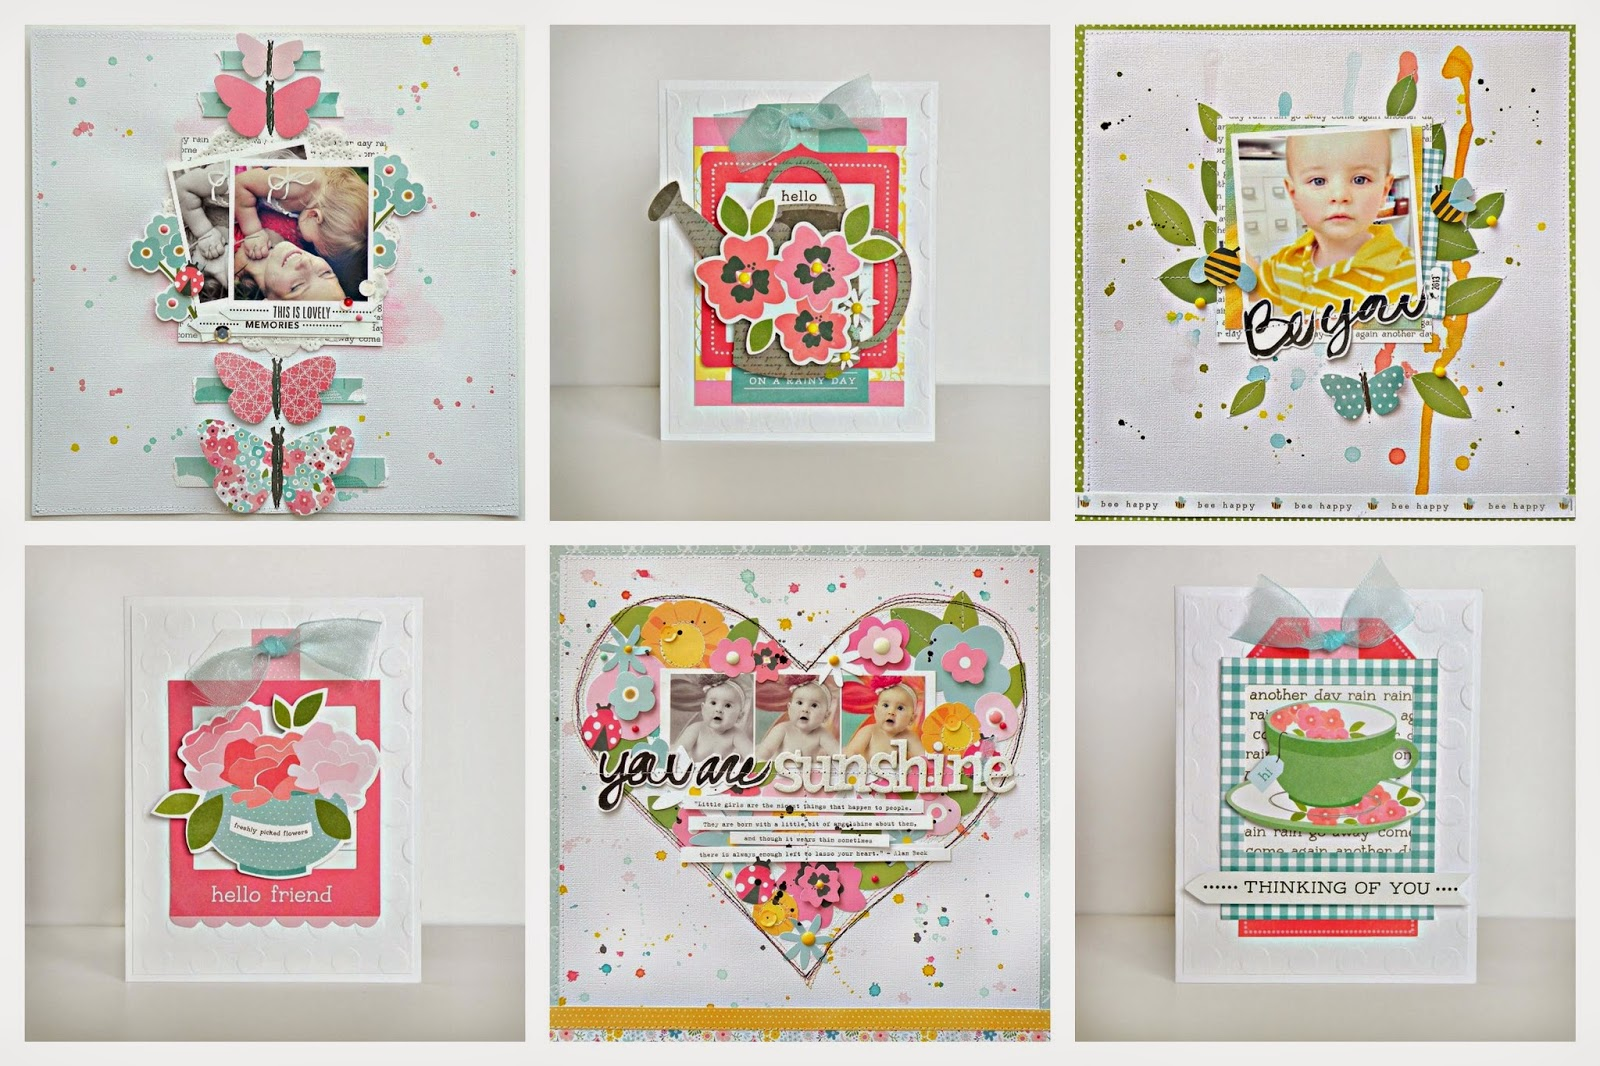 How to make scrapbook creative - Make Sure You Stop By Their Blog And Store So You Can See More Details Of My Work And What The Other Ladies Have In Store For You This Kit Is Irresistible